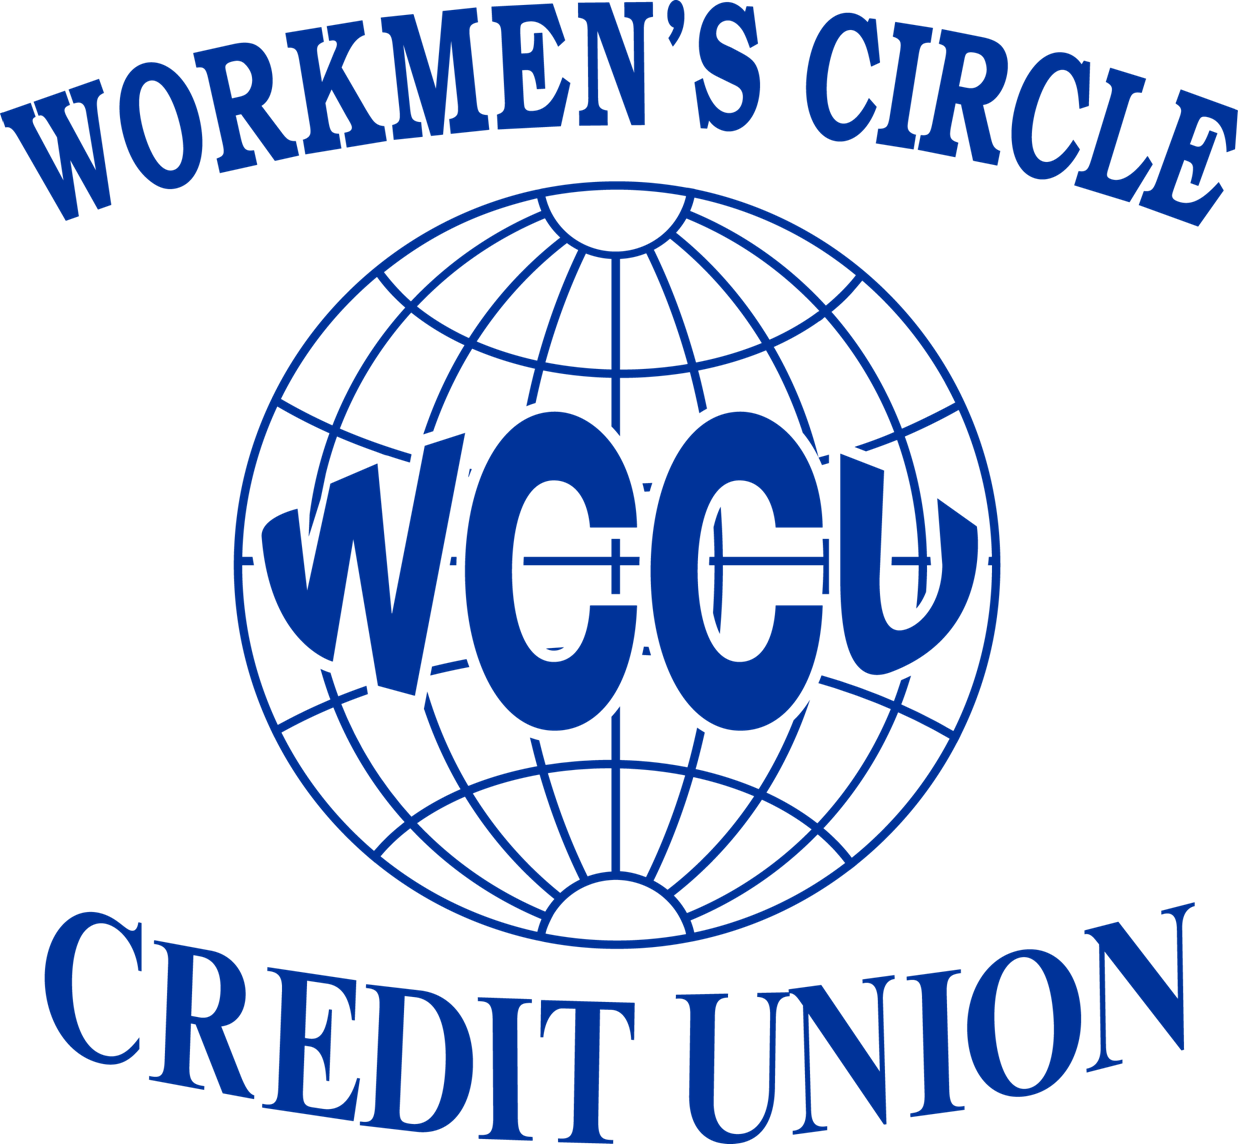 Workmen's Circle Credit Union